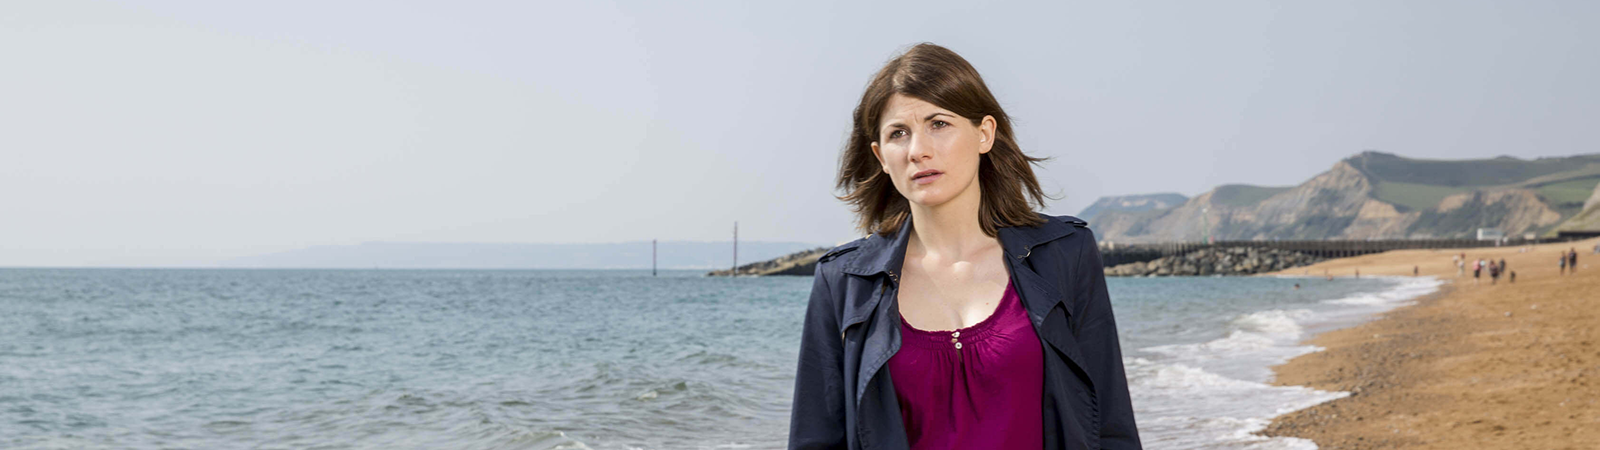 Broadchurch Jodie Whittaker